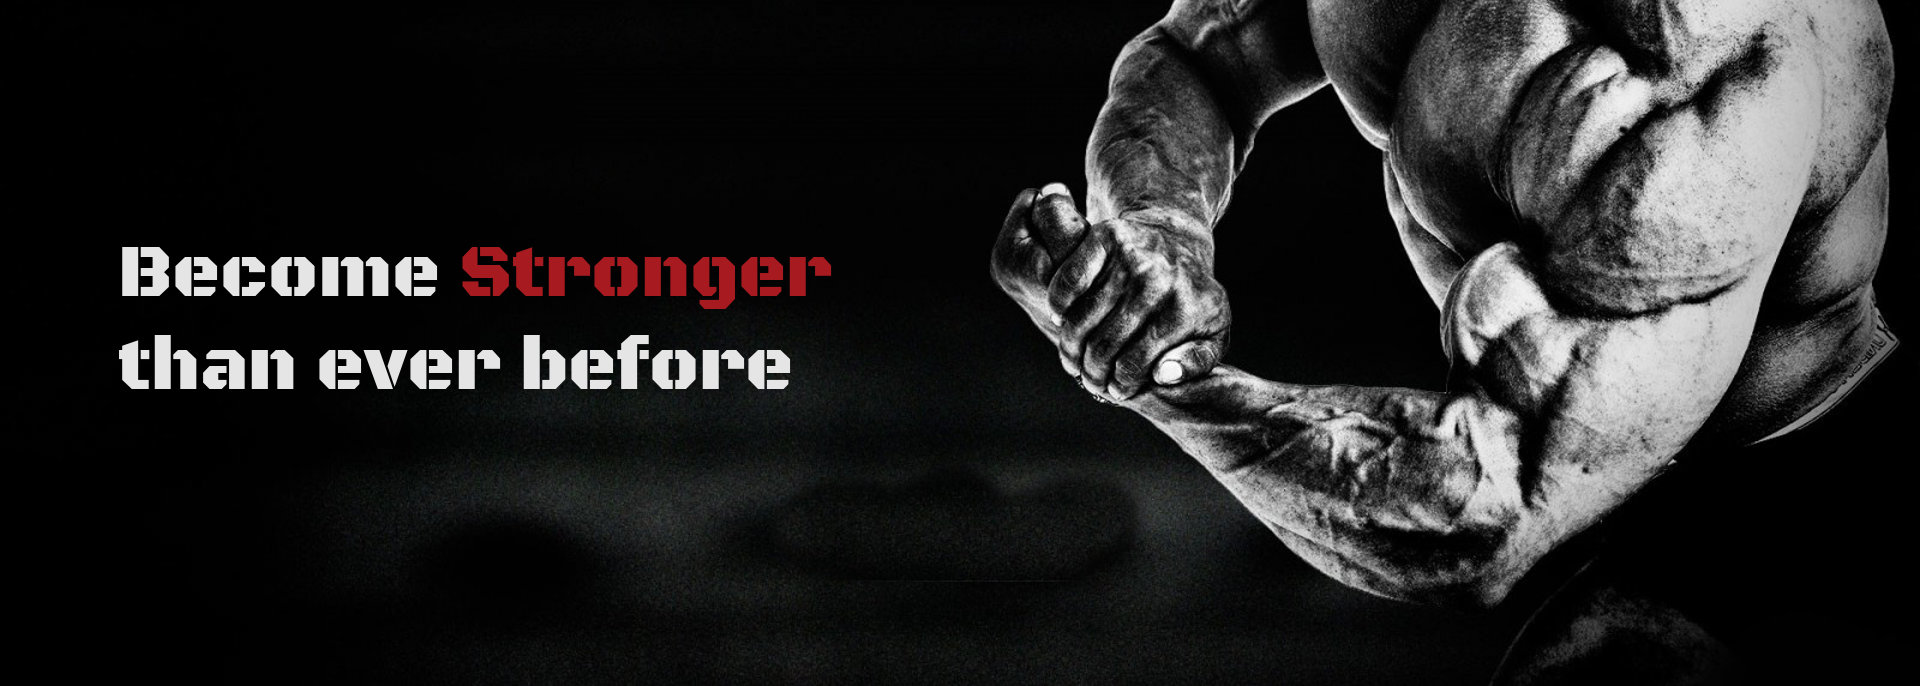 become stronger than ever before